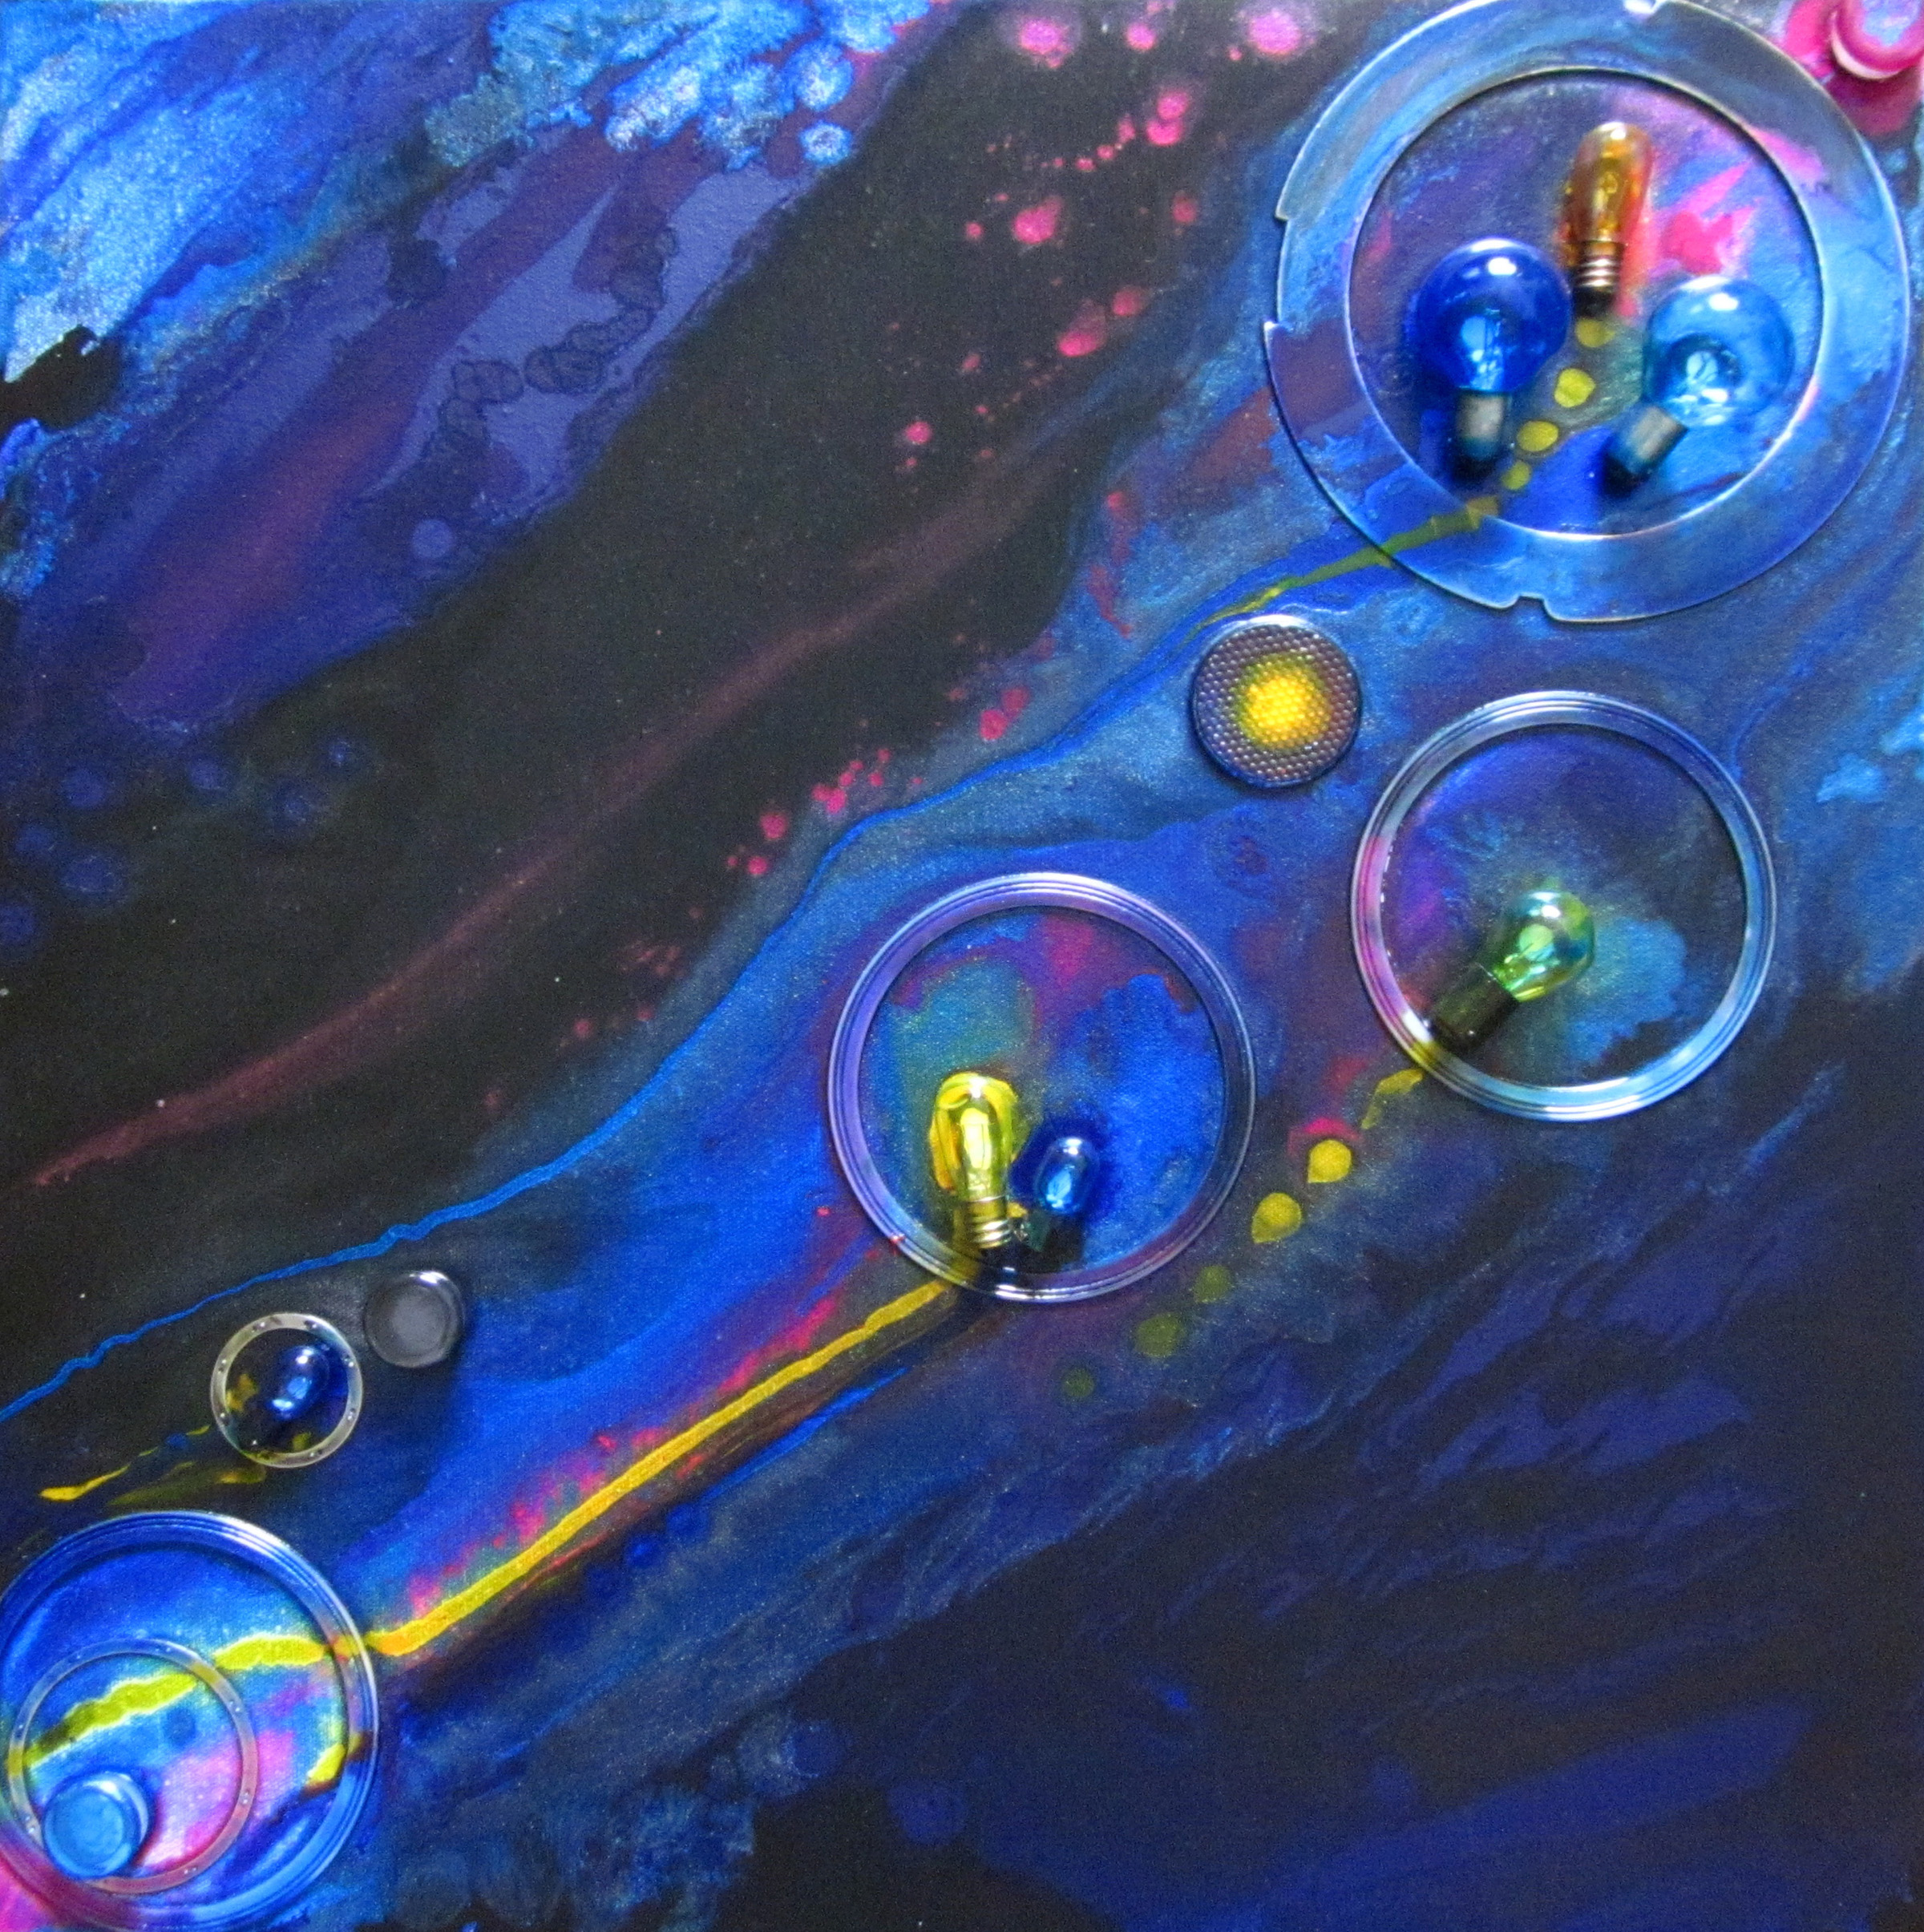 Art by Christie Miga to be seen at Arts Hub Florida & Saint Lawrence Title